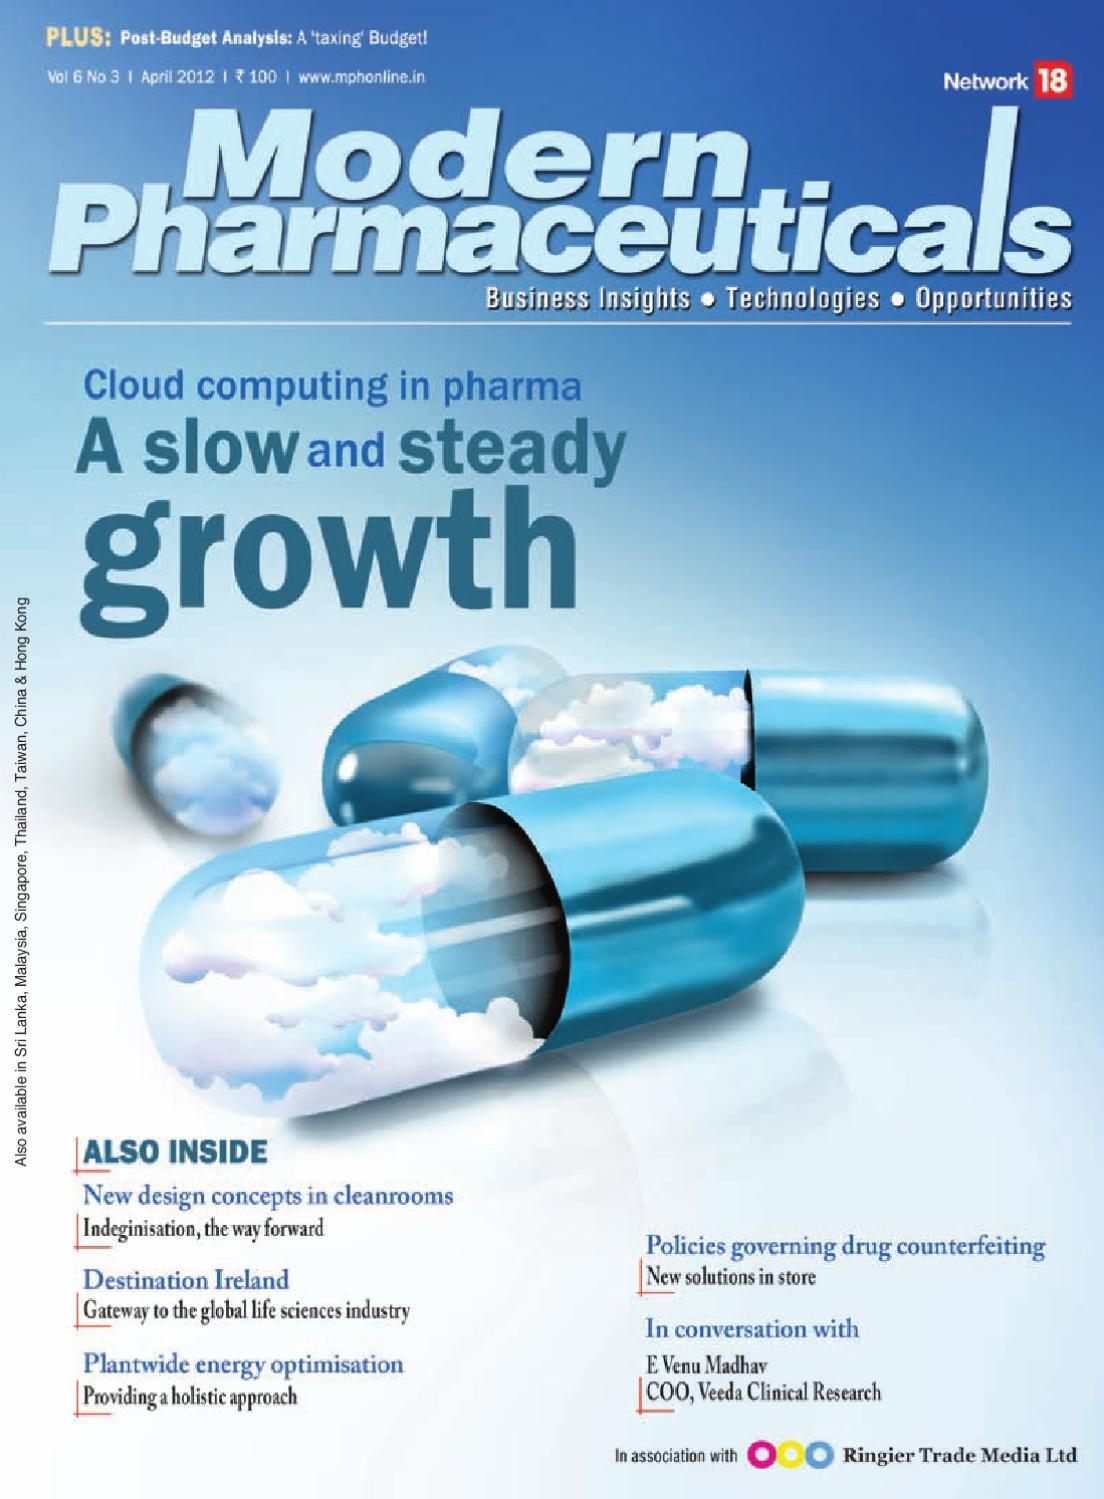 Modern Pharmaceuticals - April 2012 by Infomedia18 - issuu